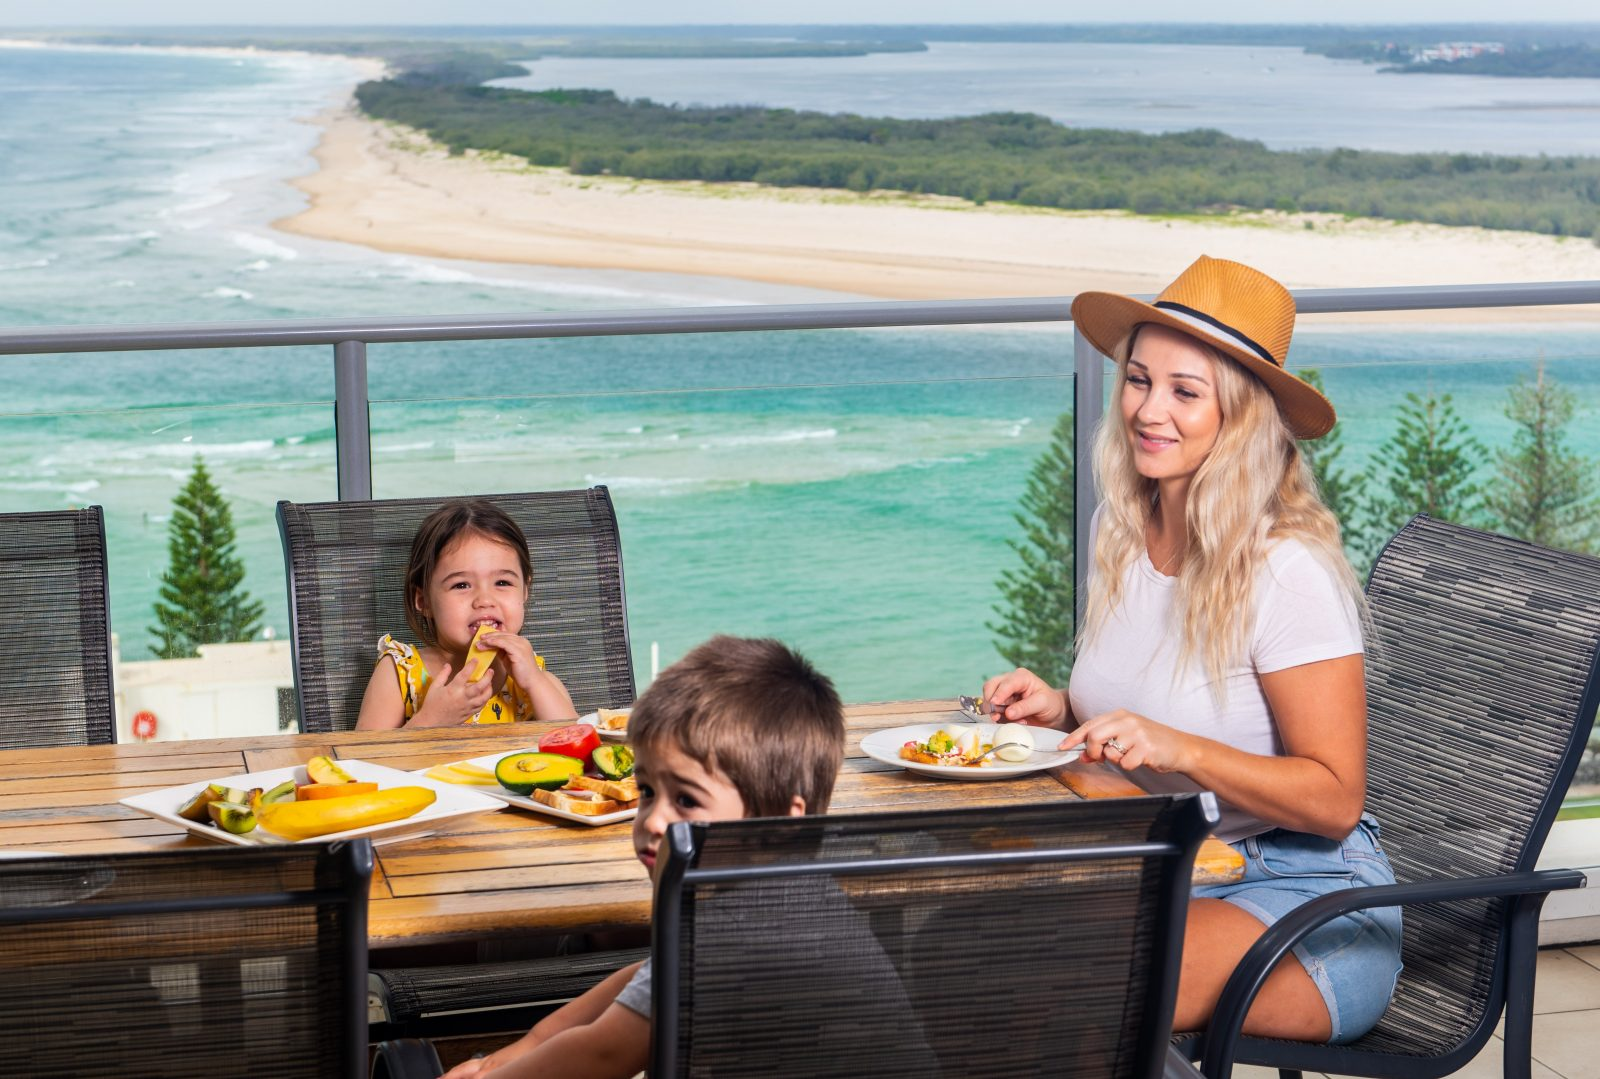 Aspect welcomes you to the best views in Caloundra. Luxuriy with great resort facilities